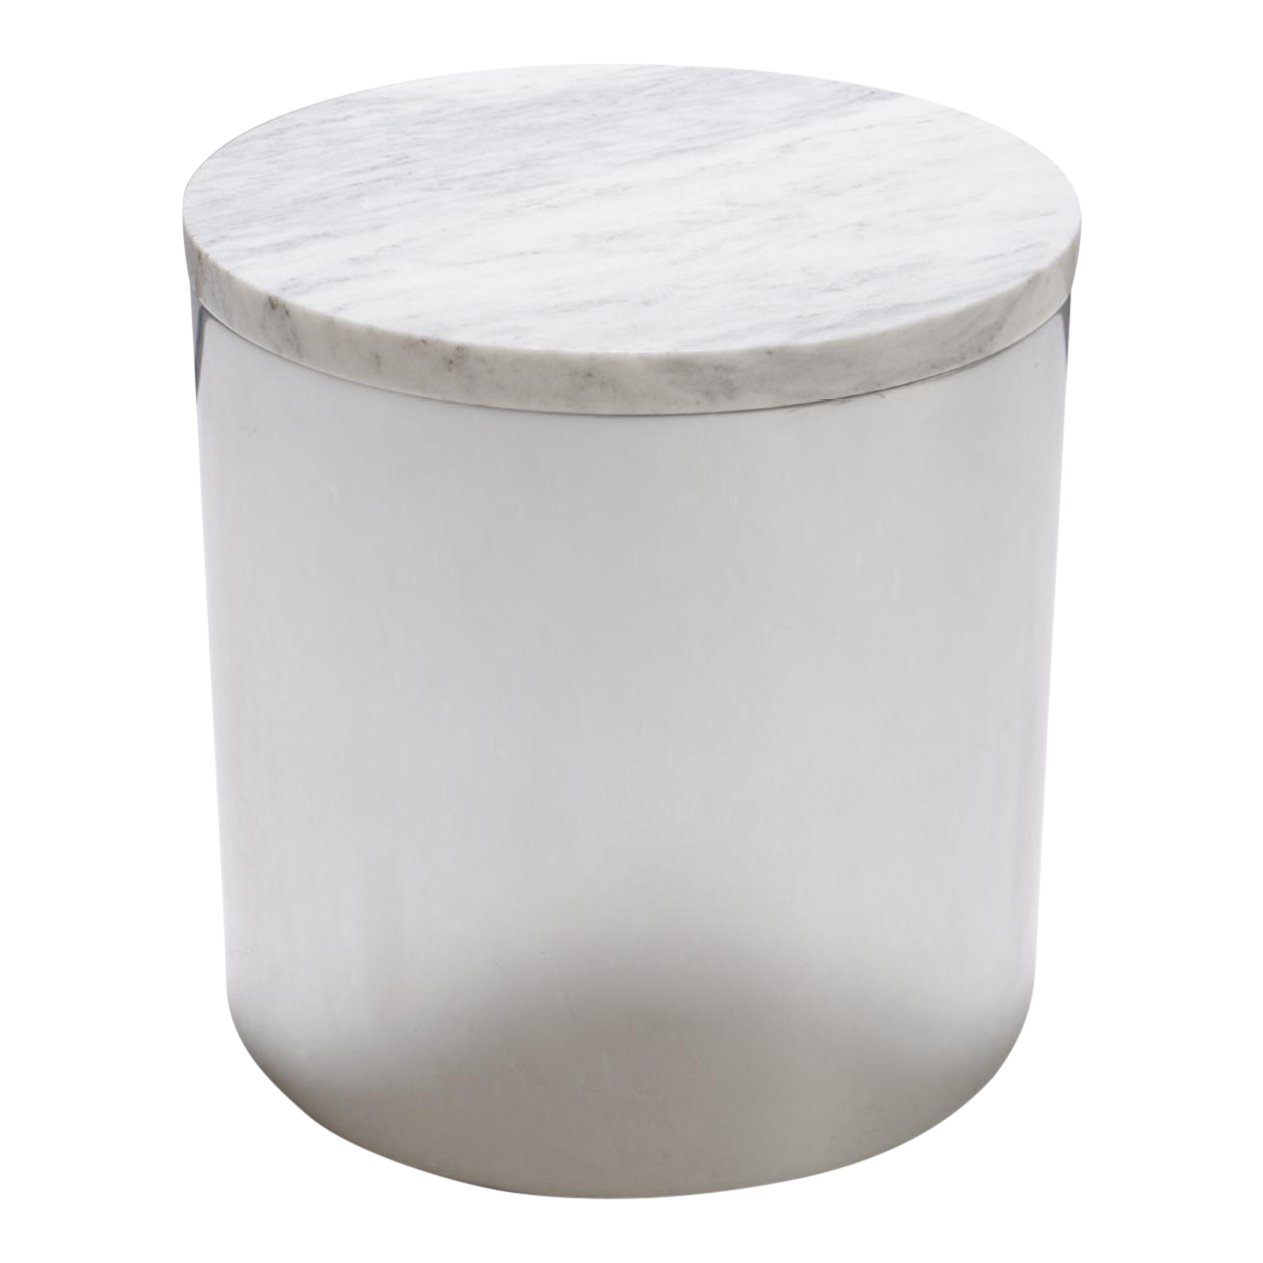 marble and steel drum accent table paul for habitat chairish cylinder ikea garden storage box glass drawer pulls weatherproof outdoor furniture usb lamp target file cabinet